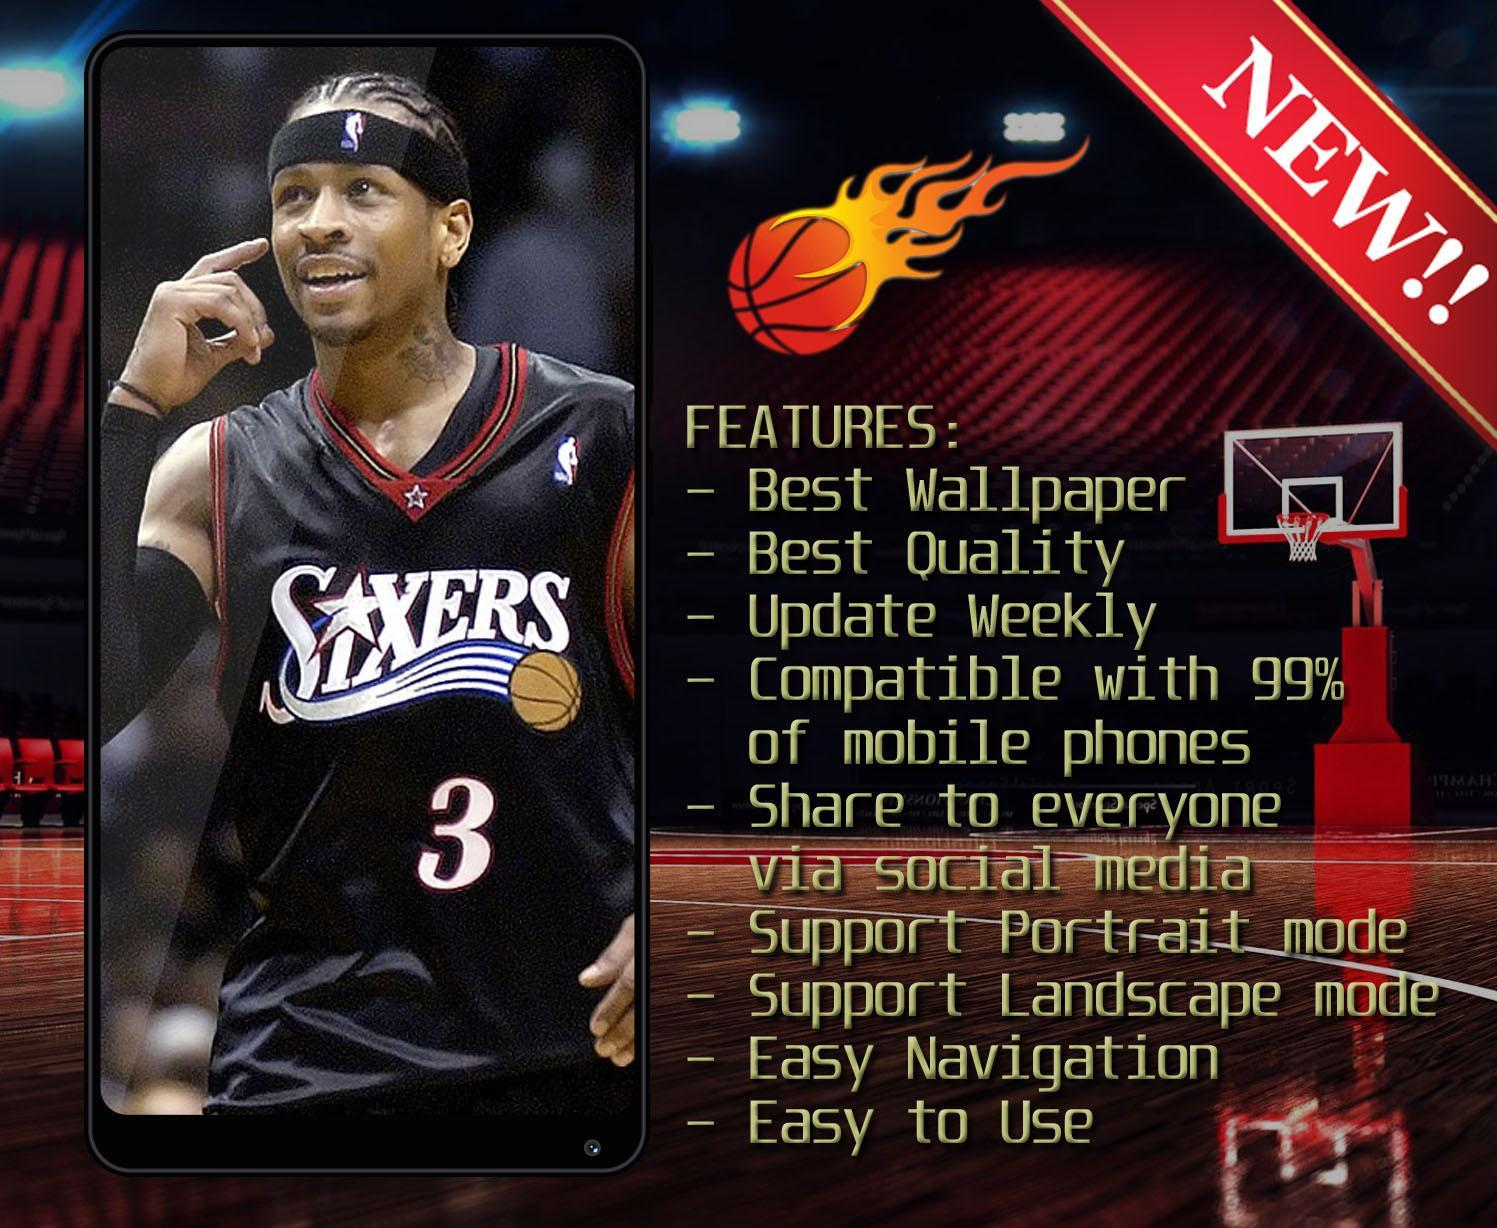 Allen Iverson Wallpaper Hd 4k For Android Apk Download